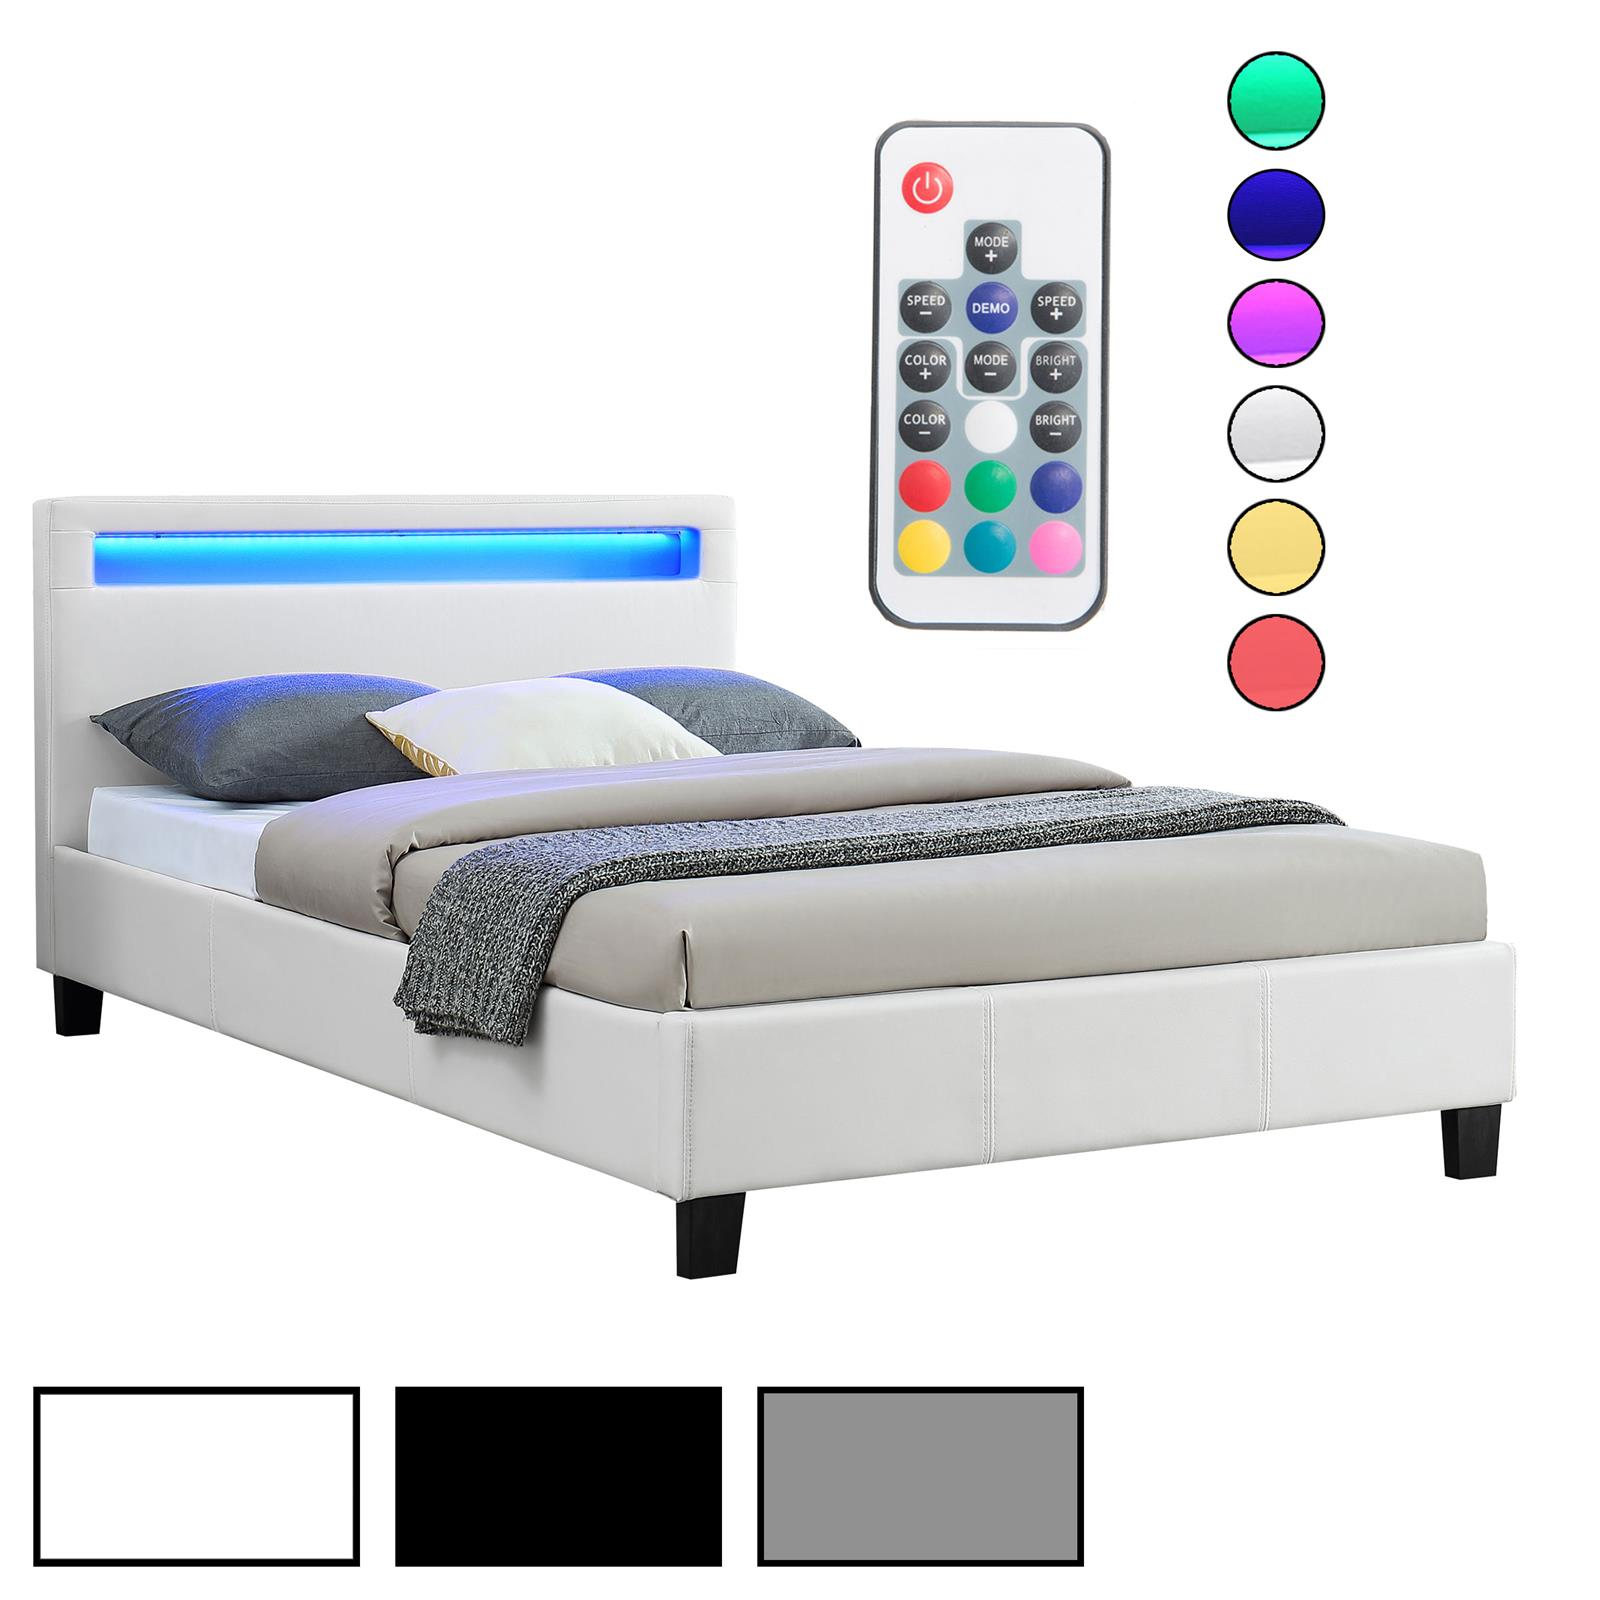 polsterbett einzelbett doppelbett jugendbett mit led 120 x 200 cm kunstleder ebay. Black Bedroom Furniture Sets. Home Design Ideas